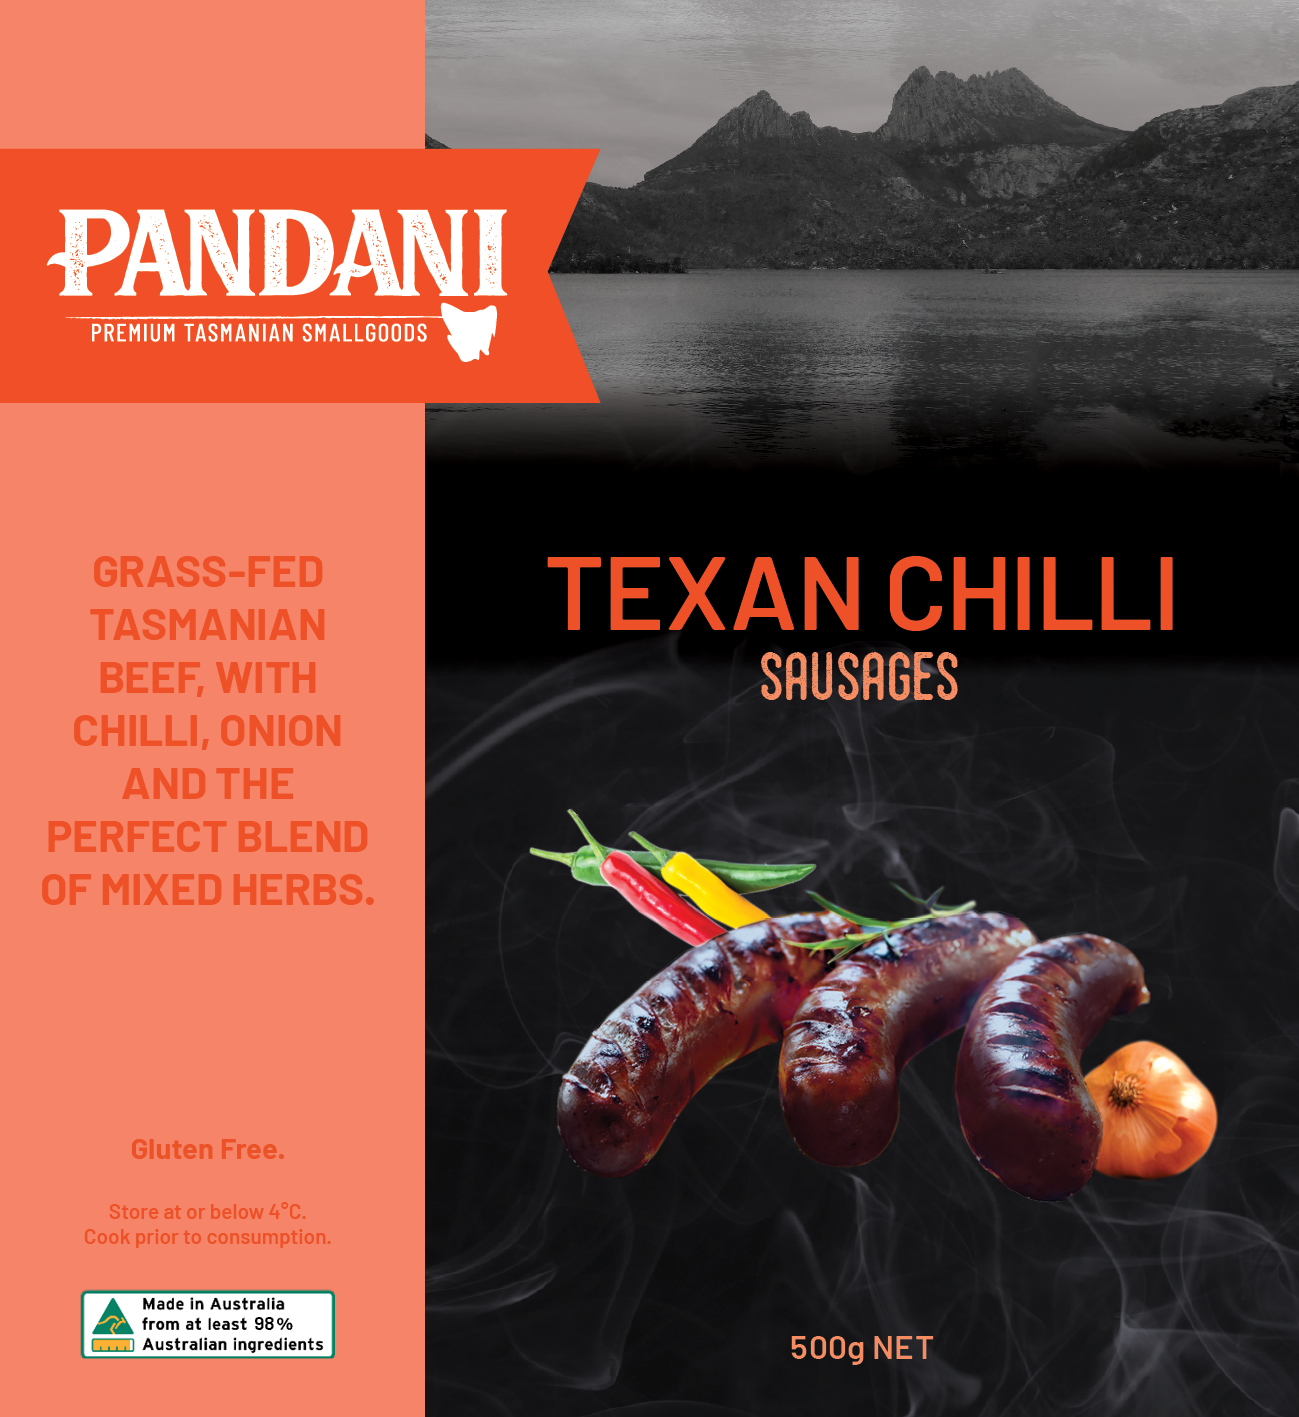 Texan Chilli, Sausages